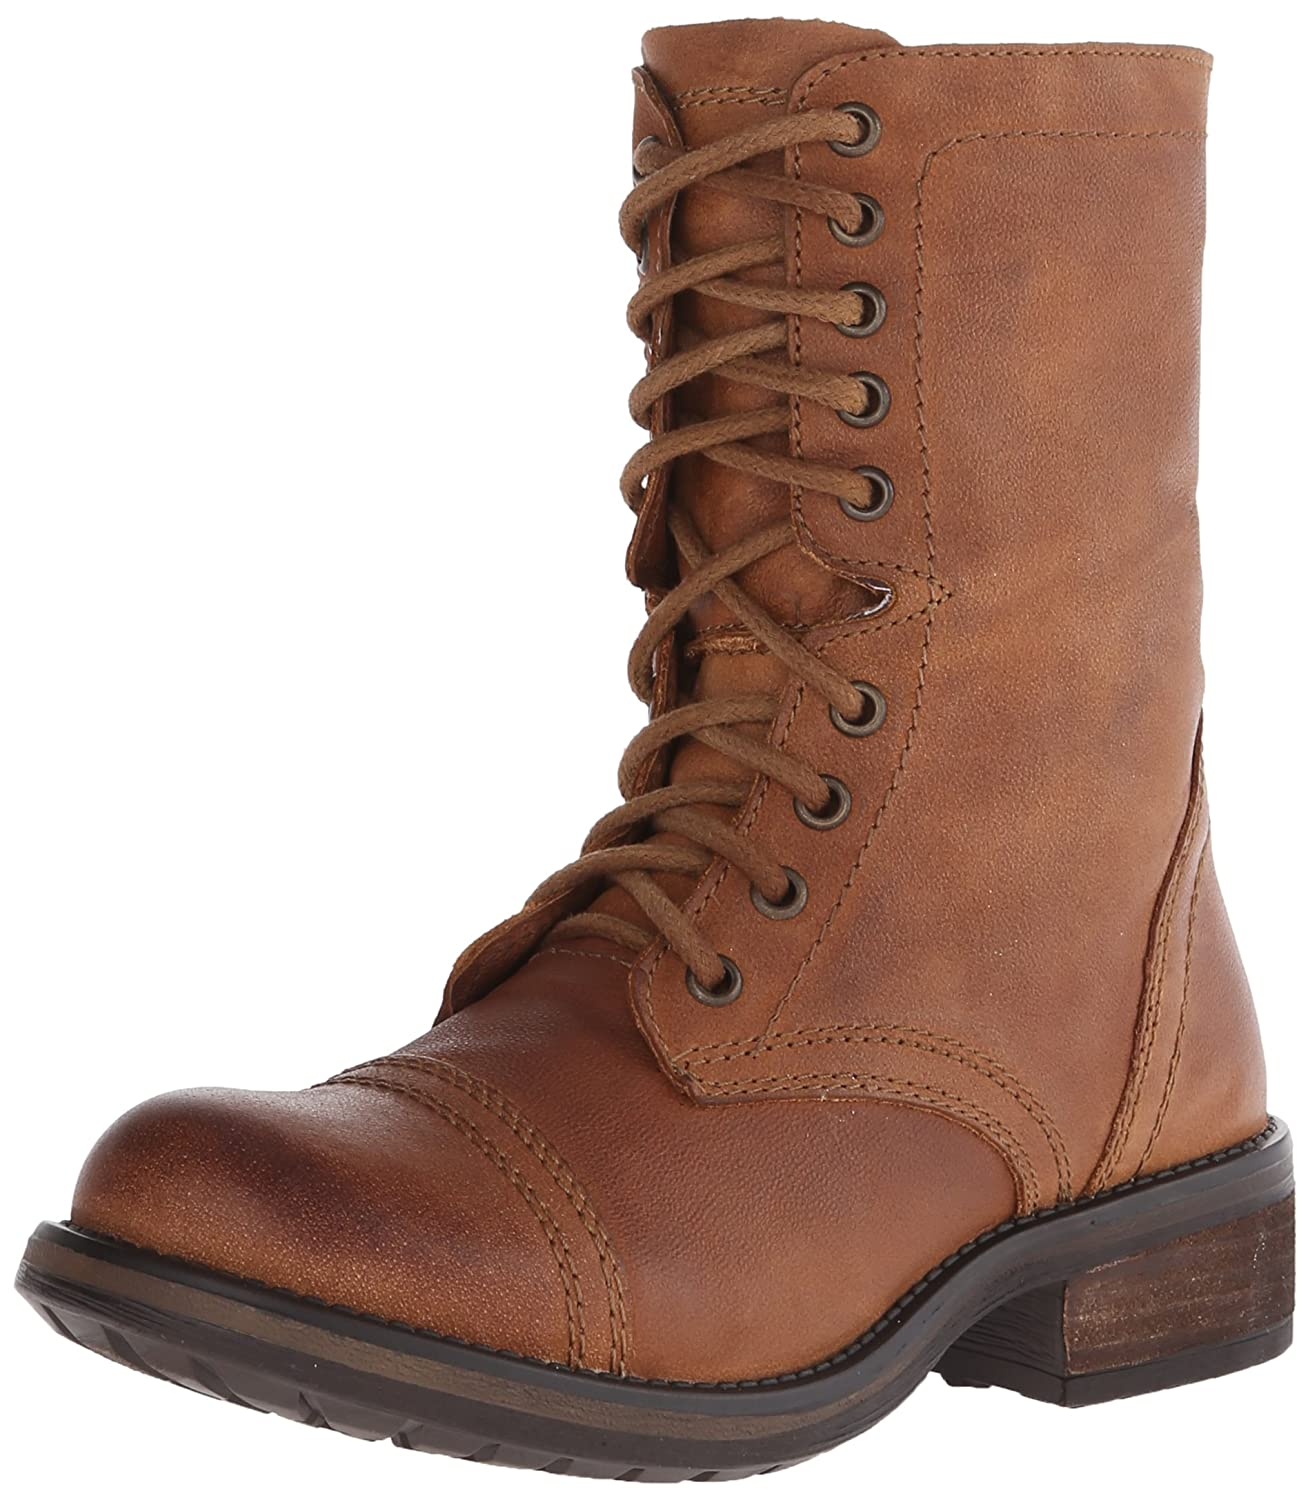 Steve Madden Women's Troopa 2.0 Combat Boot B00RY8VEA6 7.5 B(M) US|Cognac Leather